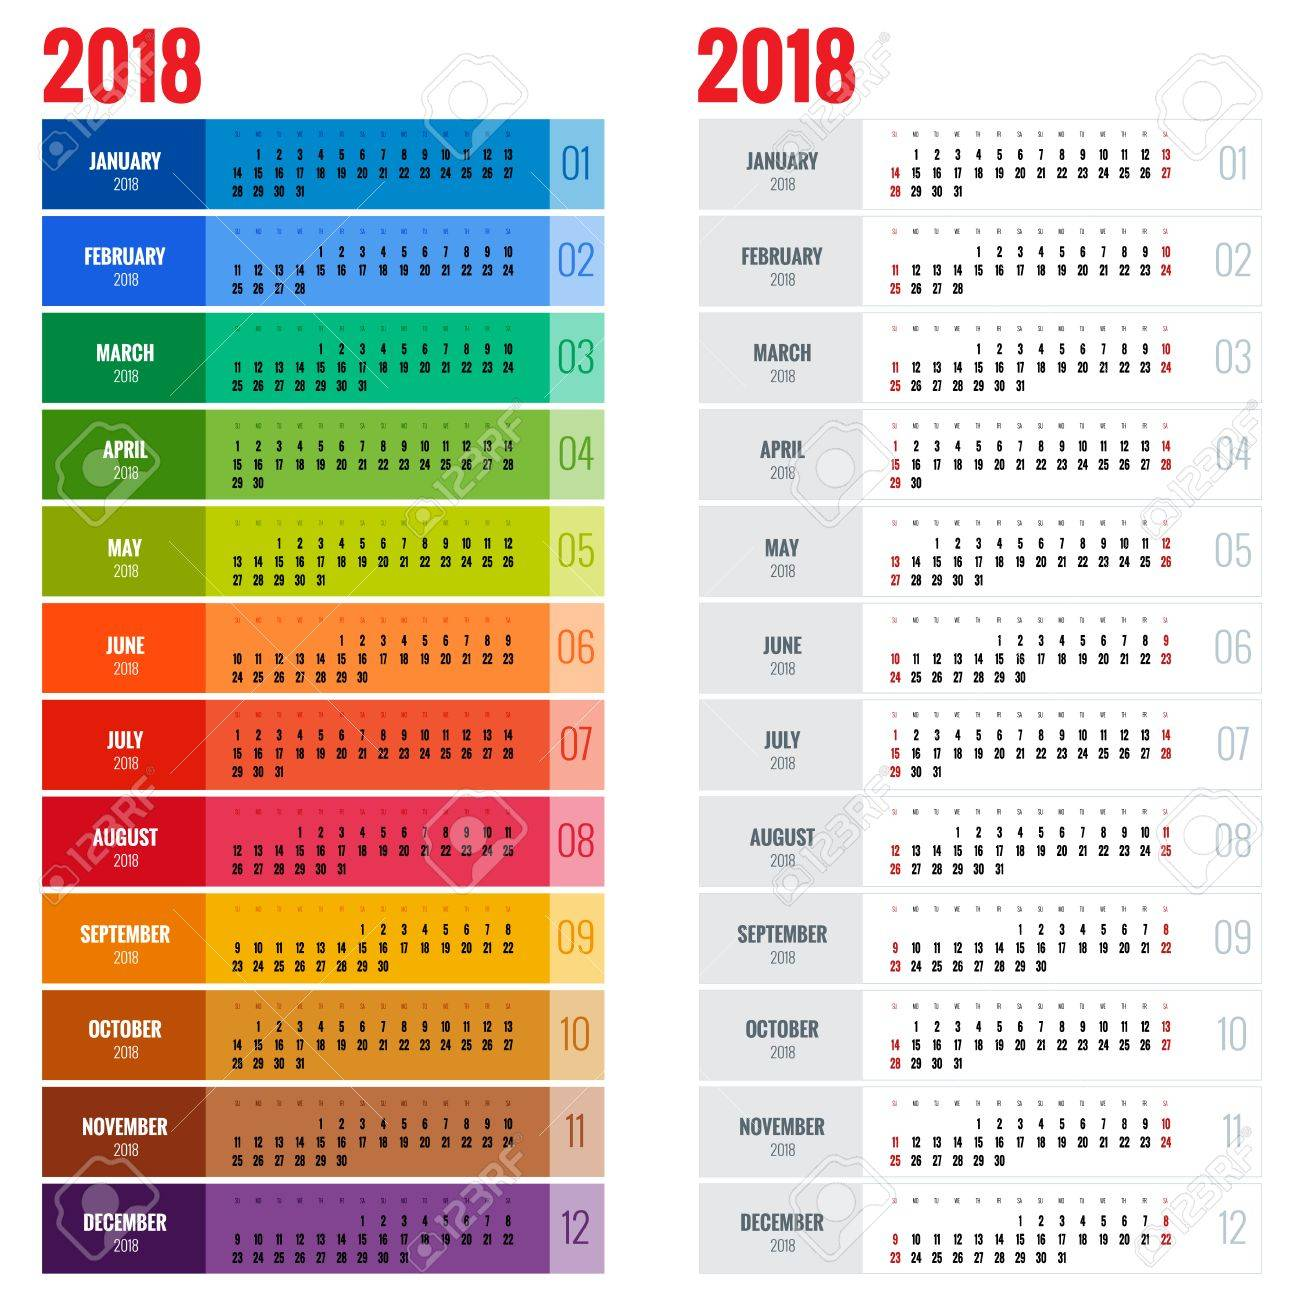 Yearly Wall Calendar Planner Template for 2018 Year. - 88076444